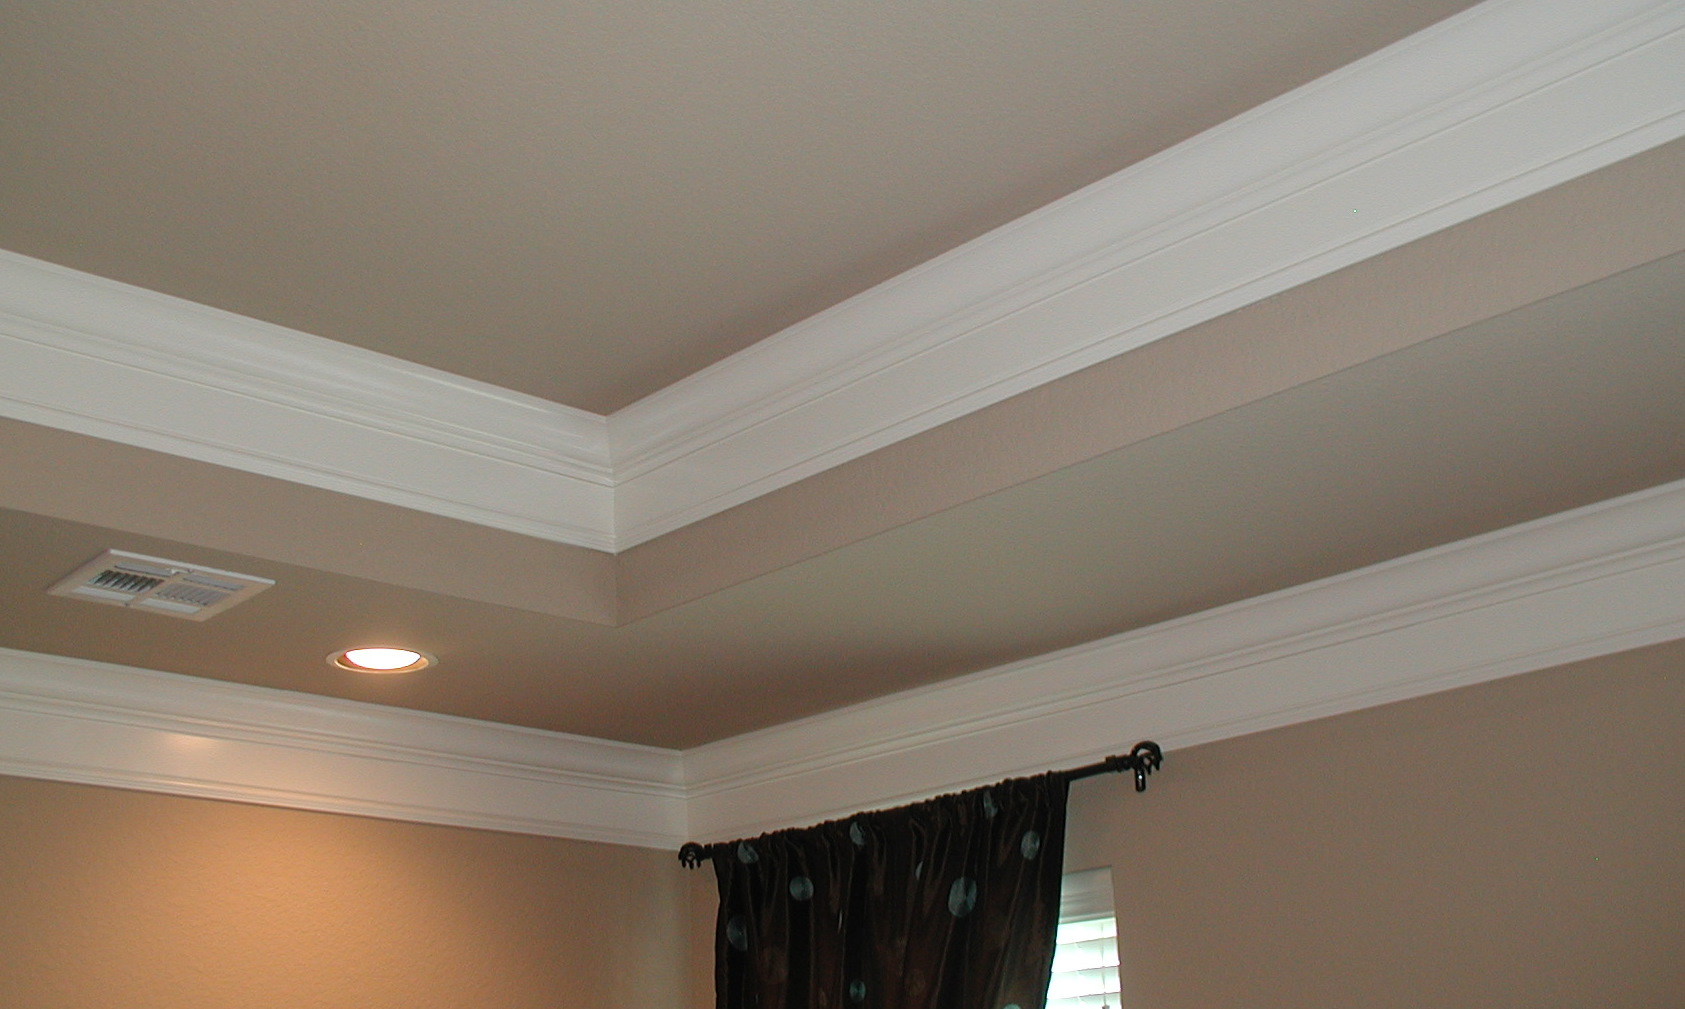 Crown molding bedroom ideas - Typical Crown Moulding Detail In A Master Bedroom With A Double Tray Ceiling For Things Like Crown Moulding We Charge By The Room